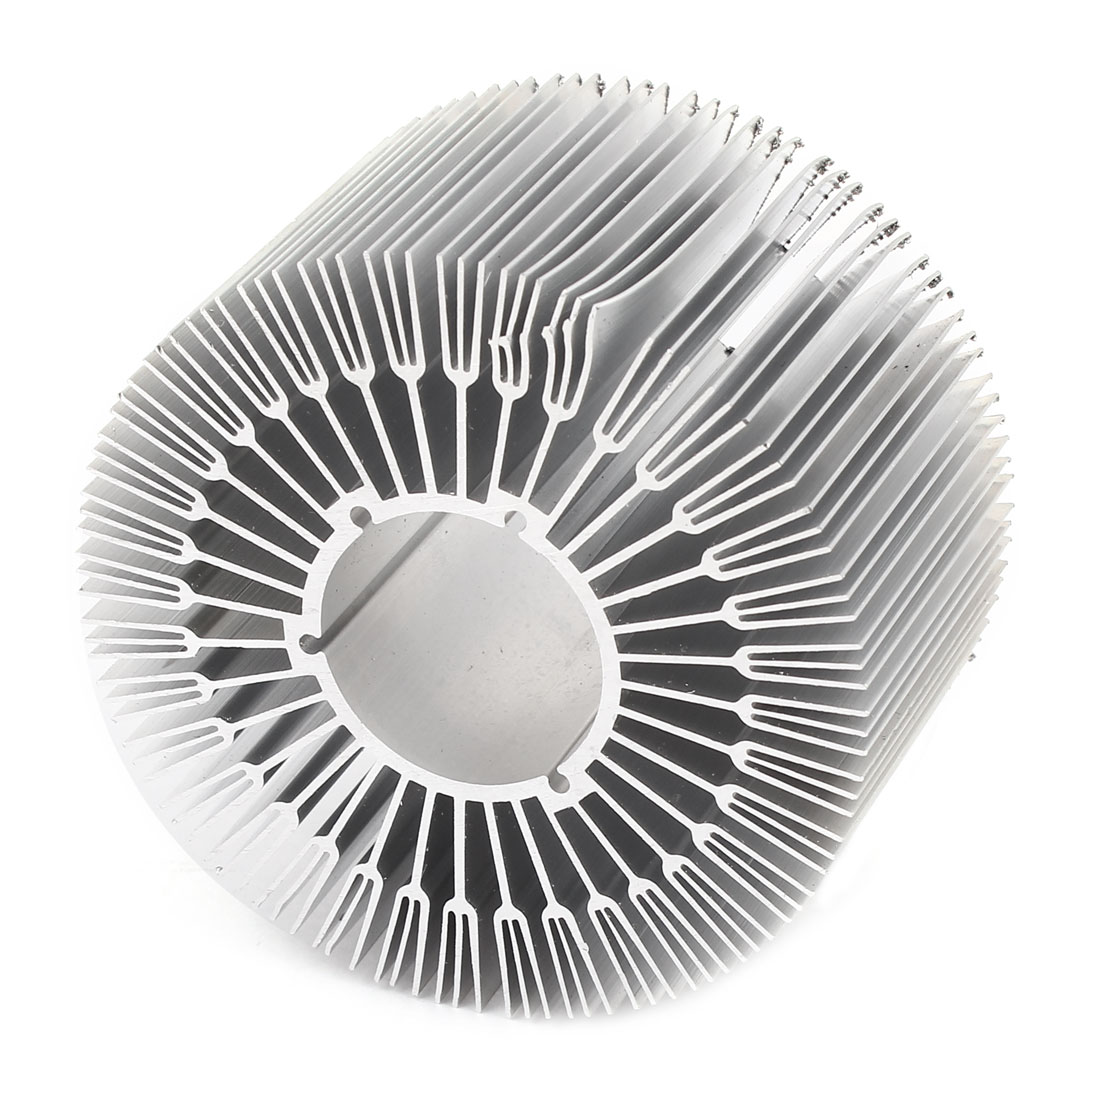 89mm x 50mm Cylinder 15W High Power LED Heatsink Aluminium Cooling Fin